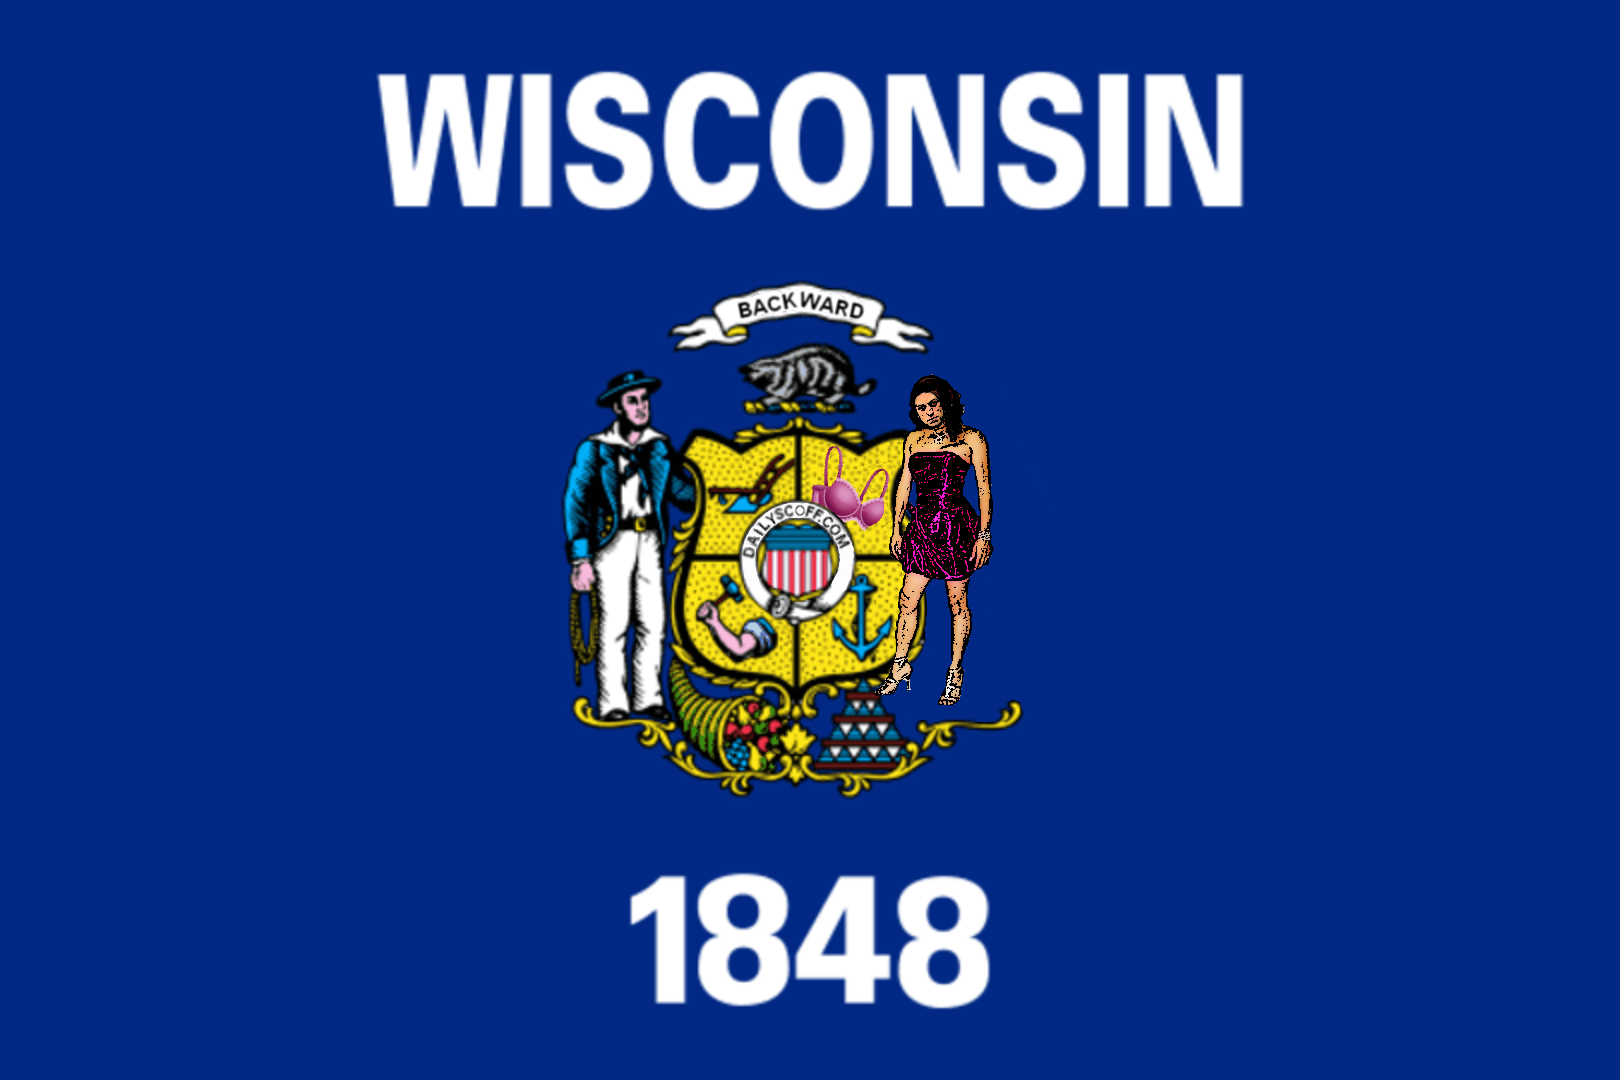 the Pink Slip Transvestite on our Wisconsin State Flag?